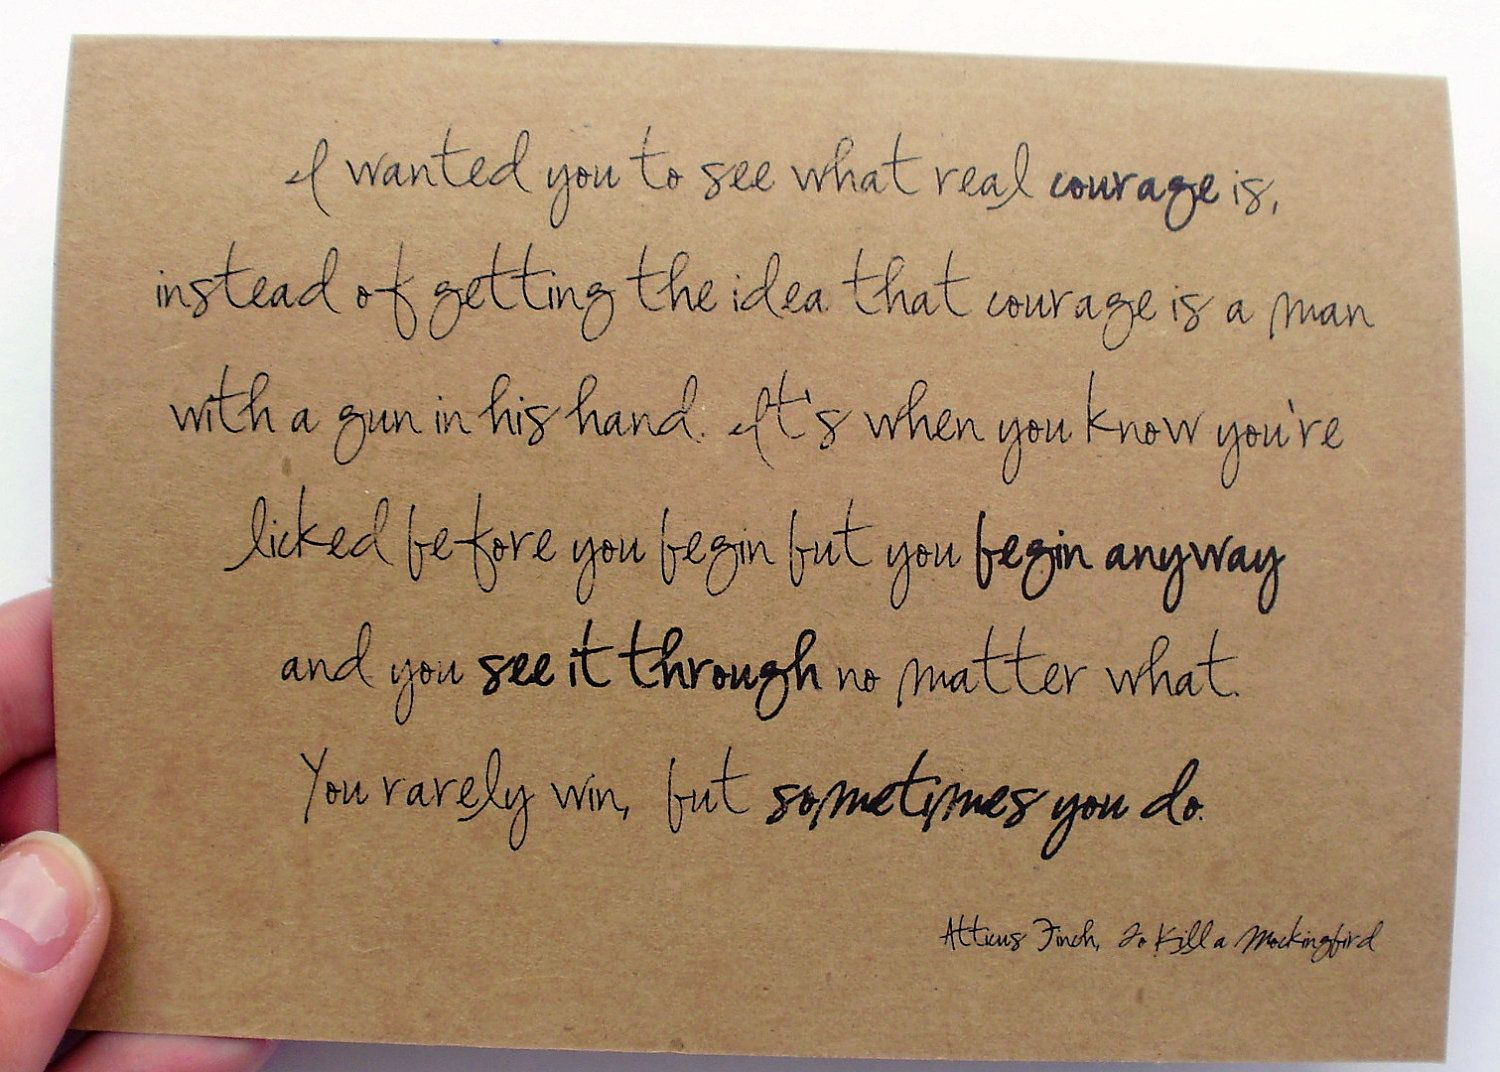 Kill mockingbird scrapbook ideas - I Wanted You To See What Real Courage Is To Kill A Mockingbird